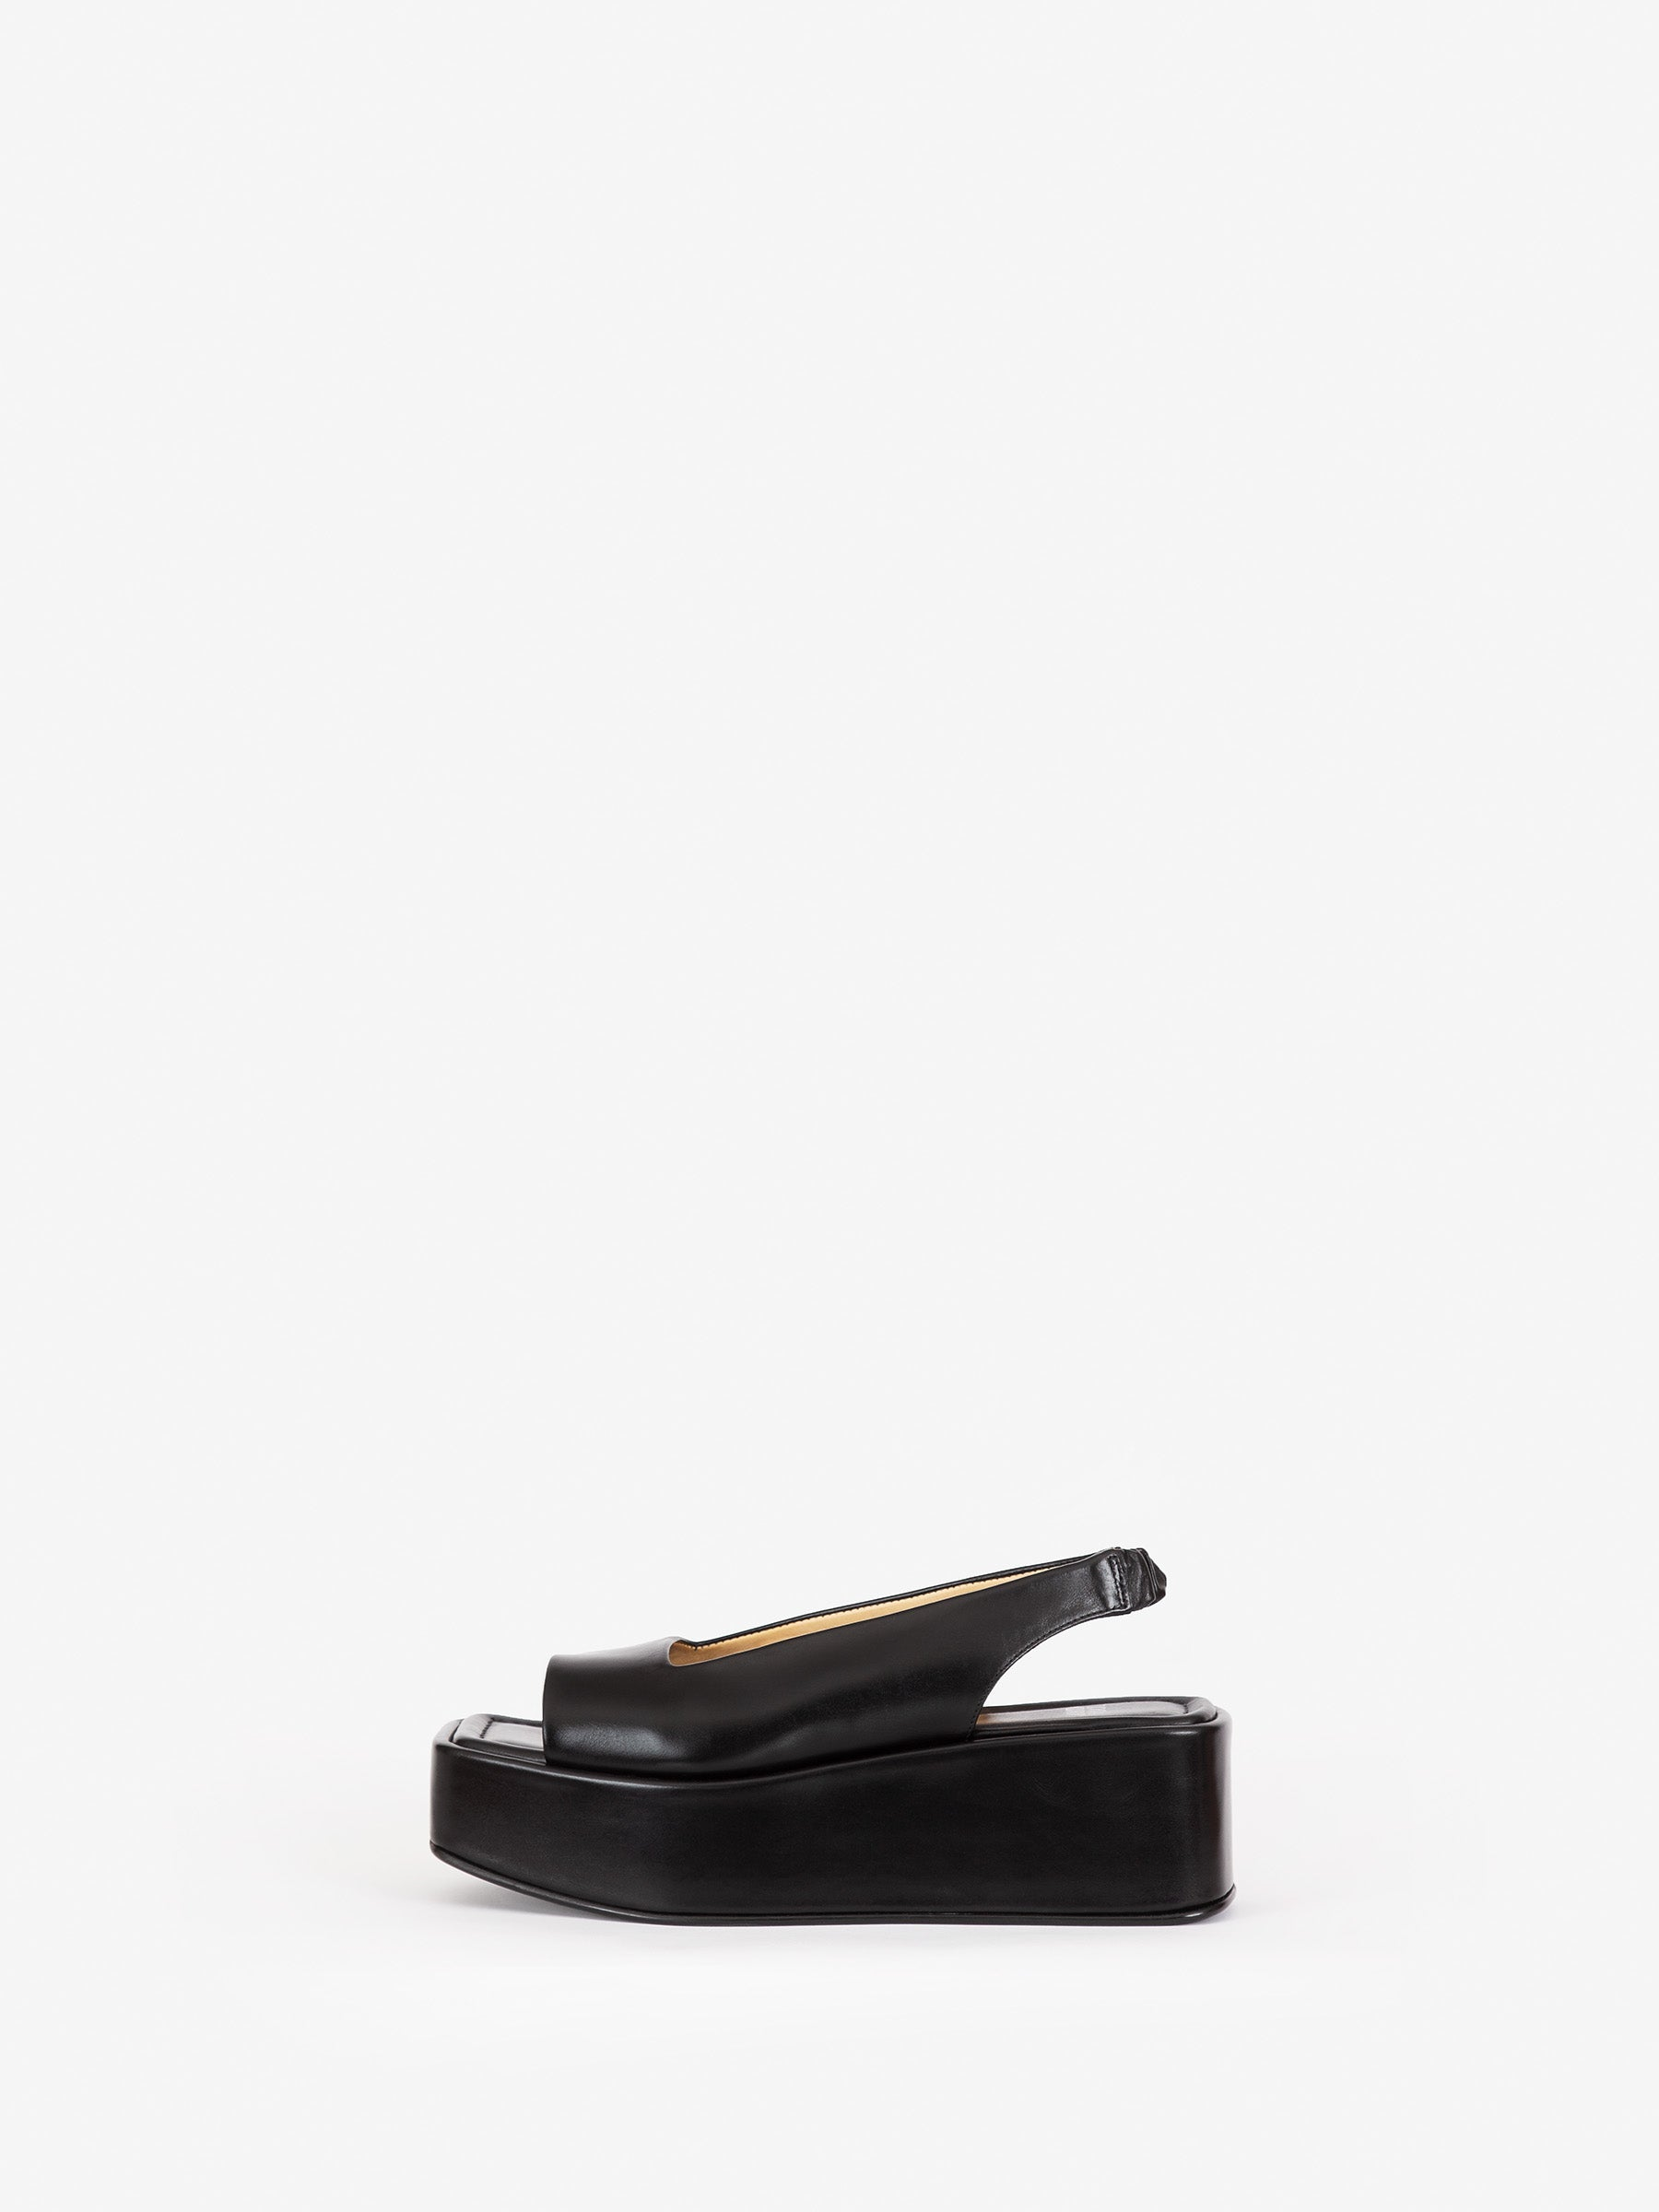 ANNY NORD - LEVEL UP slingback black -leftside